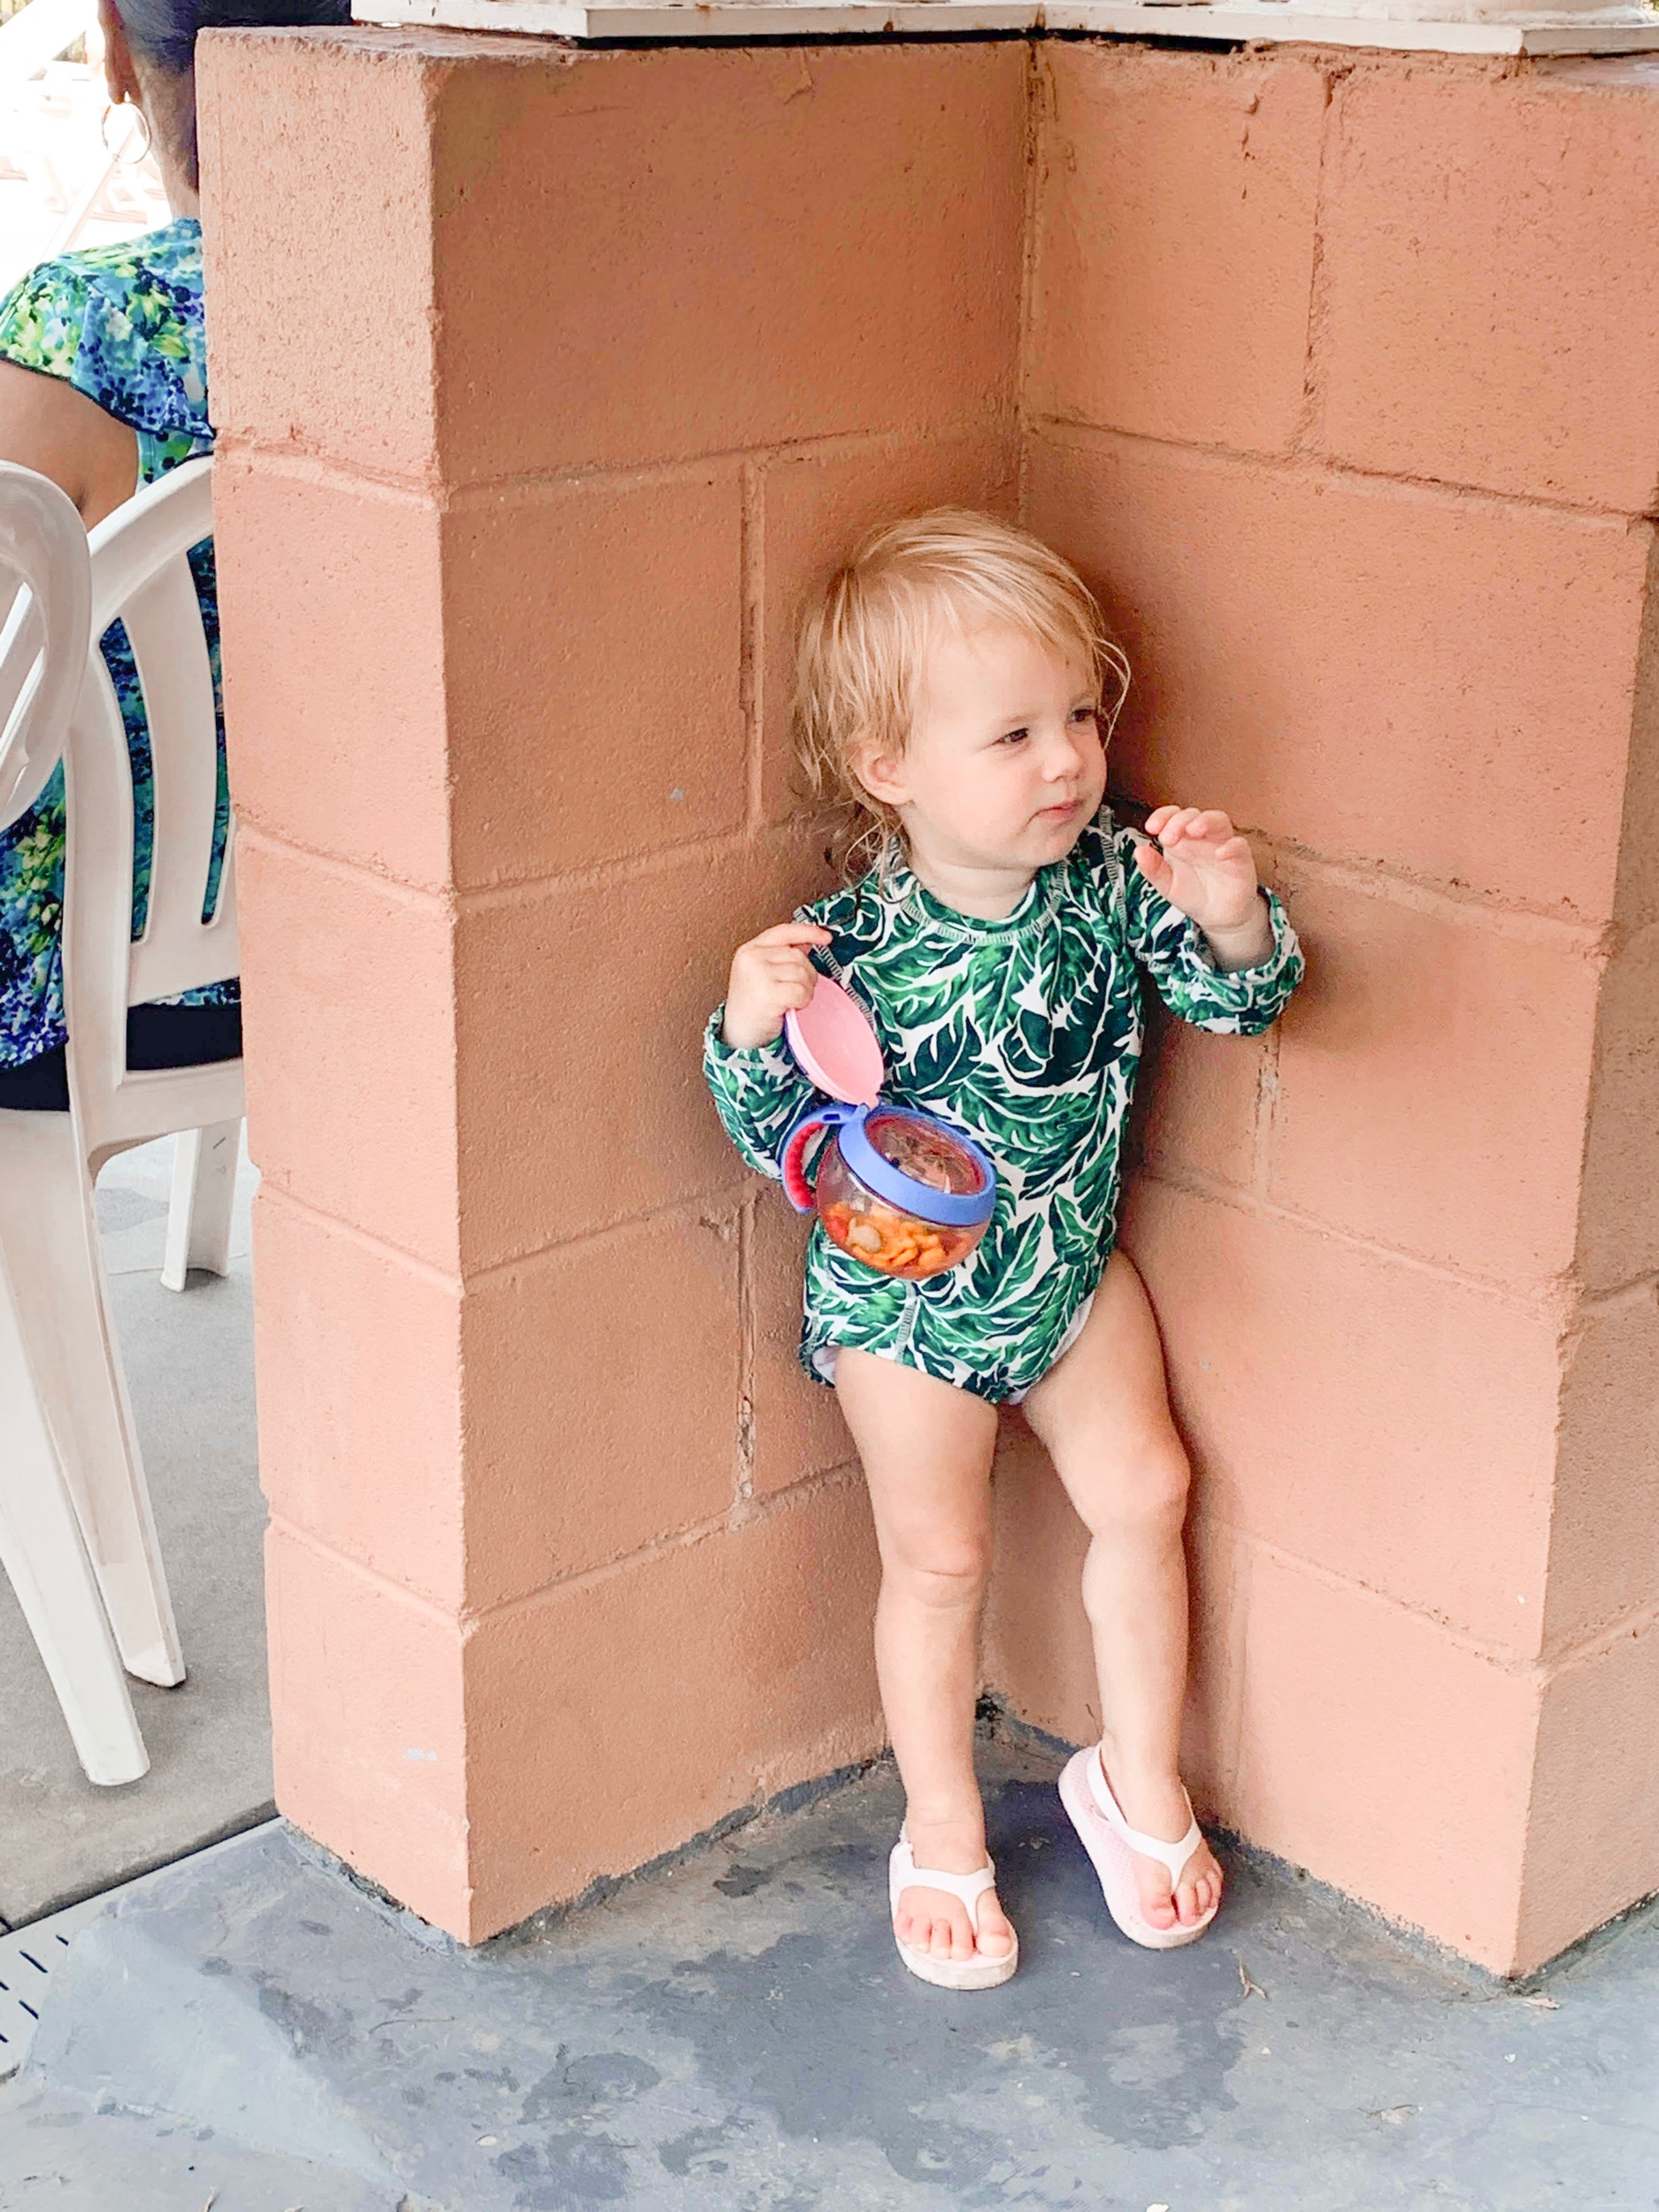 Ginny kept putting herself in 'timeout' with her snacks 🤣. She could only handle swim lessons for 15-20min tops! Just too young at 1.5yrs old!!